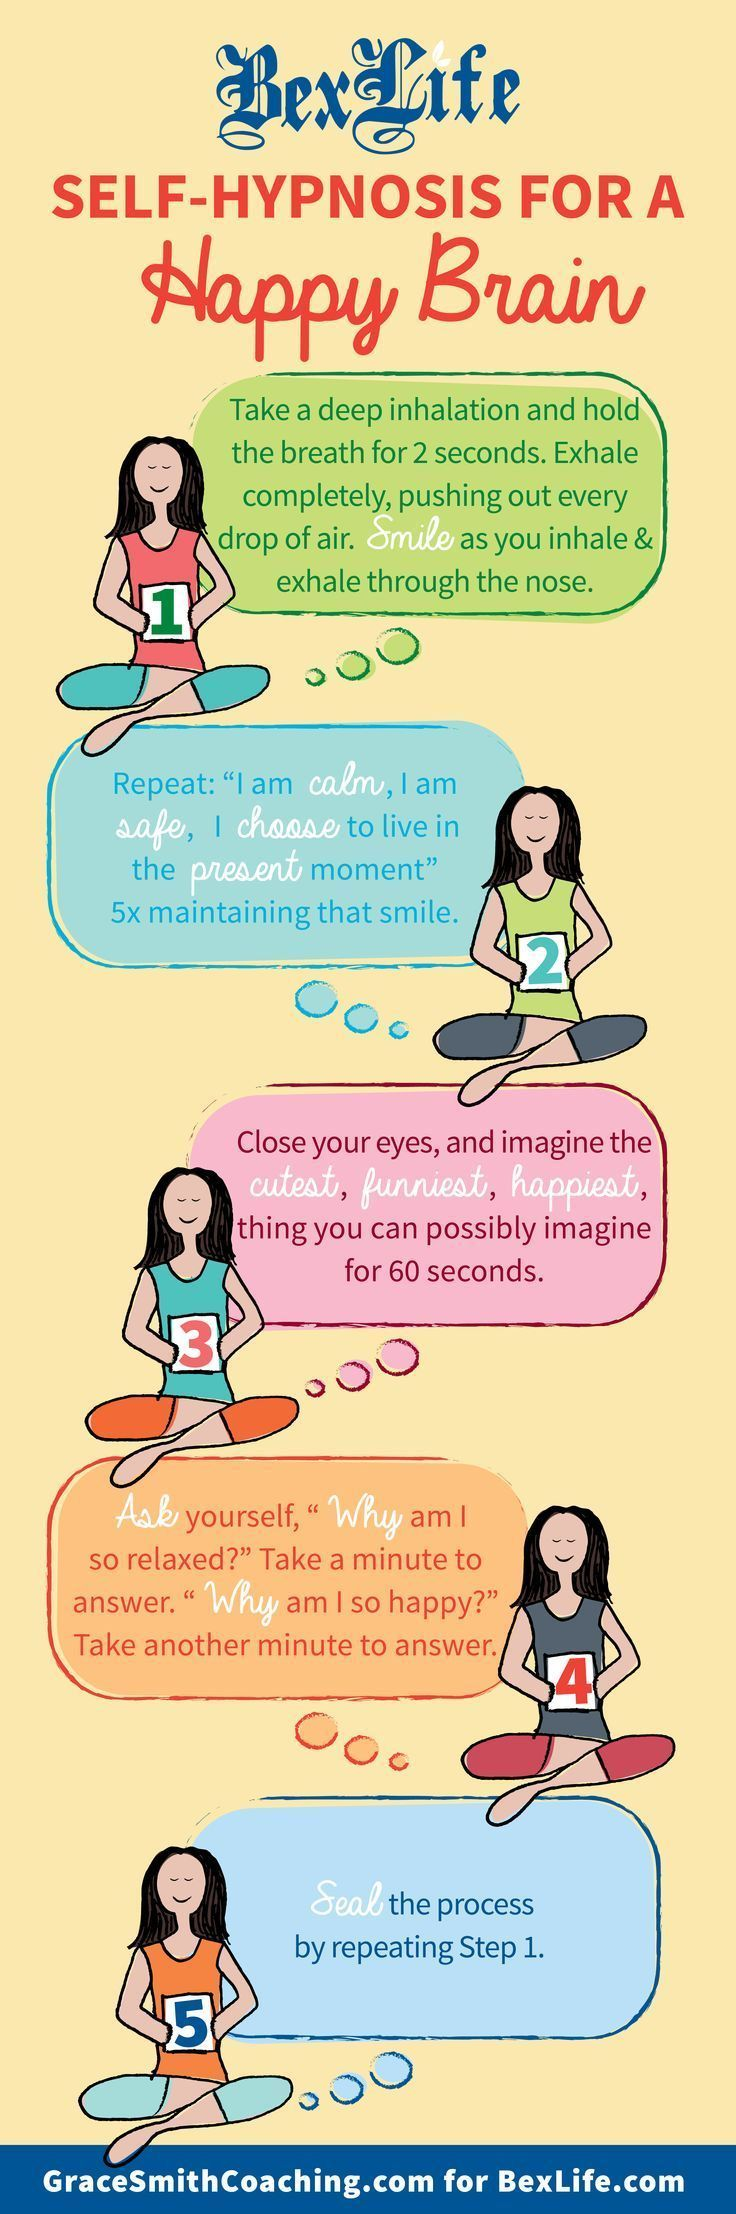 More of a nice guided centering rather than self-hypnosis, refreshingly simple! Simple mindful breathing exercise to reduce stress & anxiety.